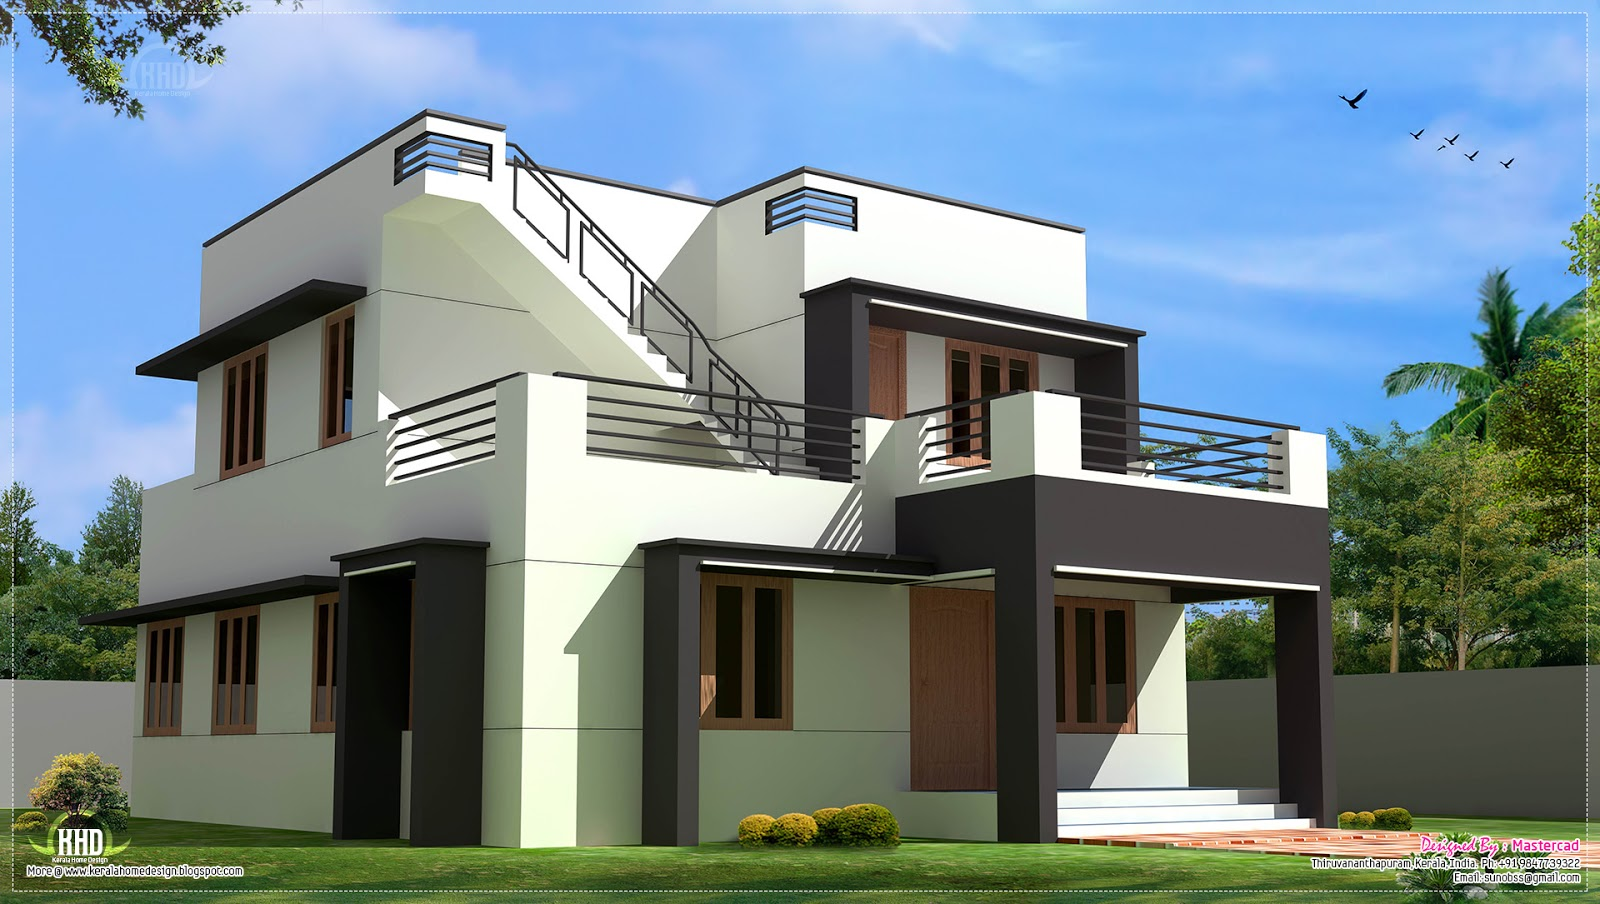 Modern house design in 1700 kerala home design for Contemporary house blueprints